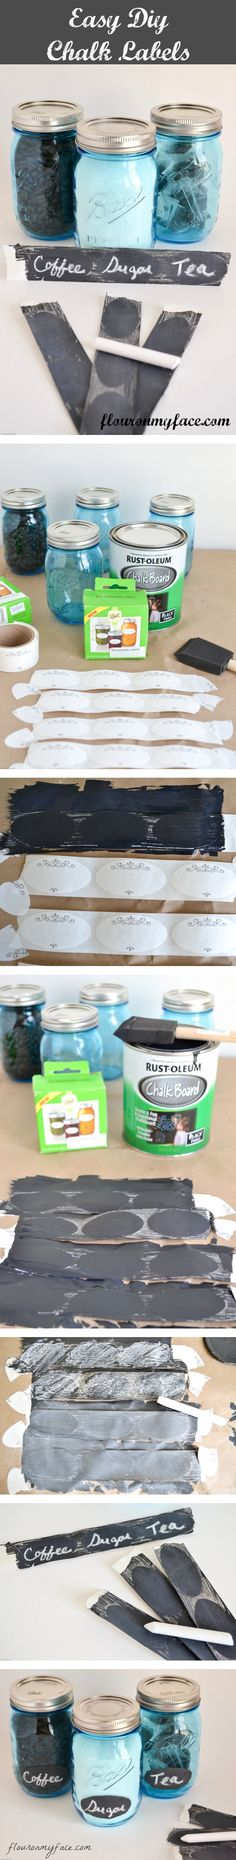 Easy DIY Chalkboard labels - Blue Ball jars at bulk prices at Fillmore Container #canning supplies #vintage blue jars